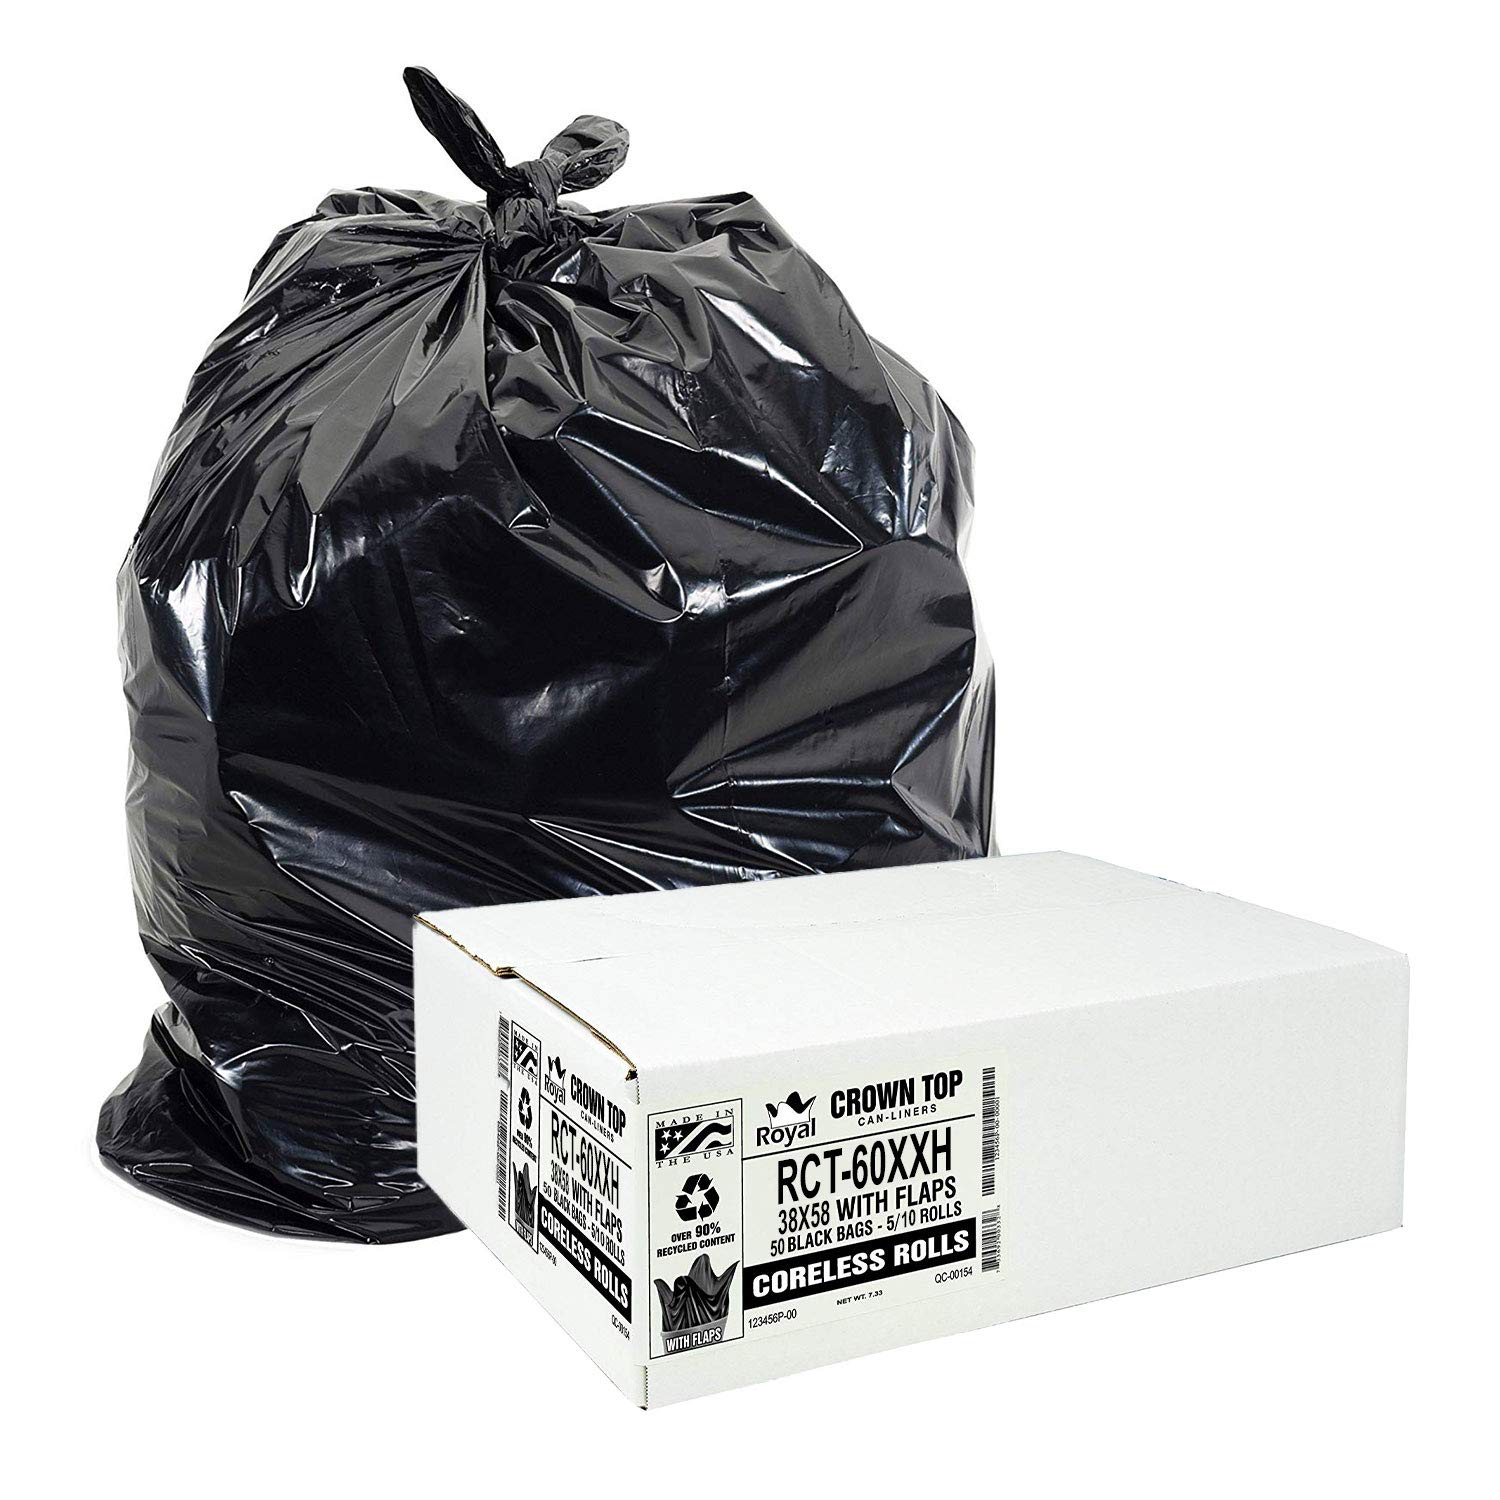 55 Gallon Trash Bags Heavy Duty - (Huge 50 Pack) - 2.0 MIL Thick (equiv) - 38